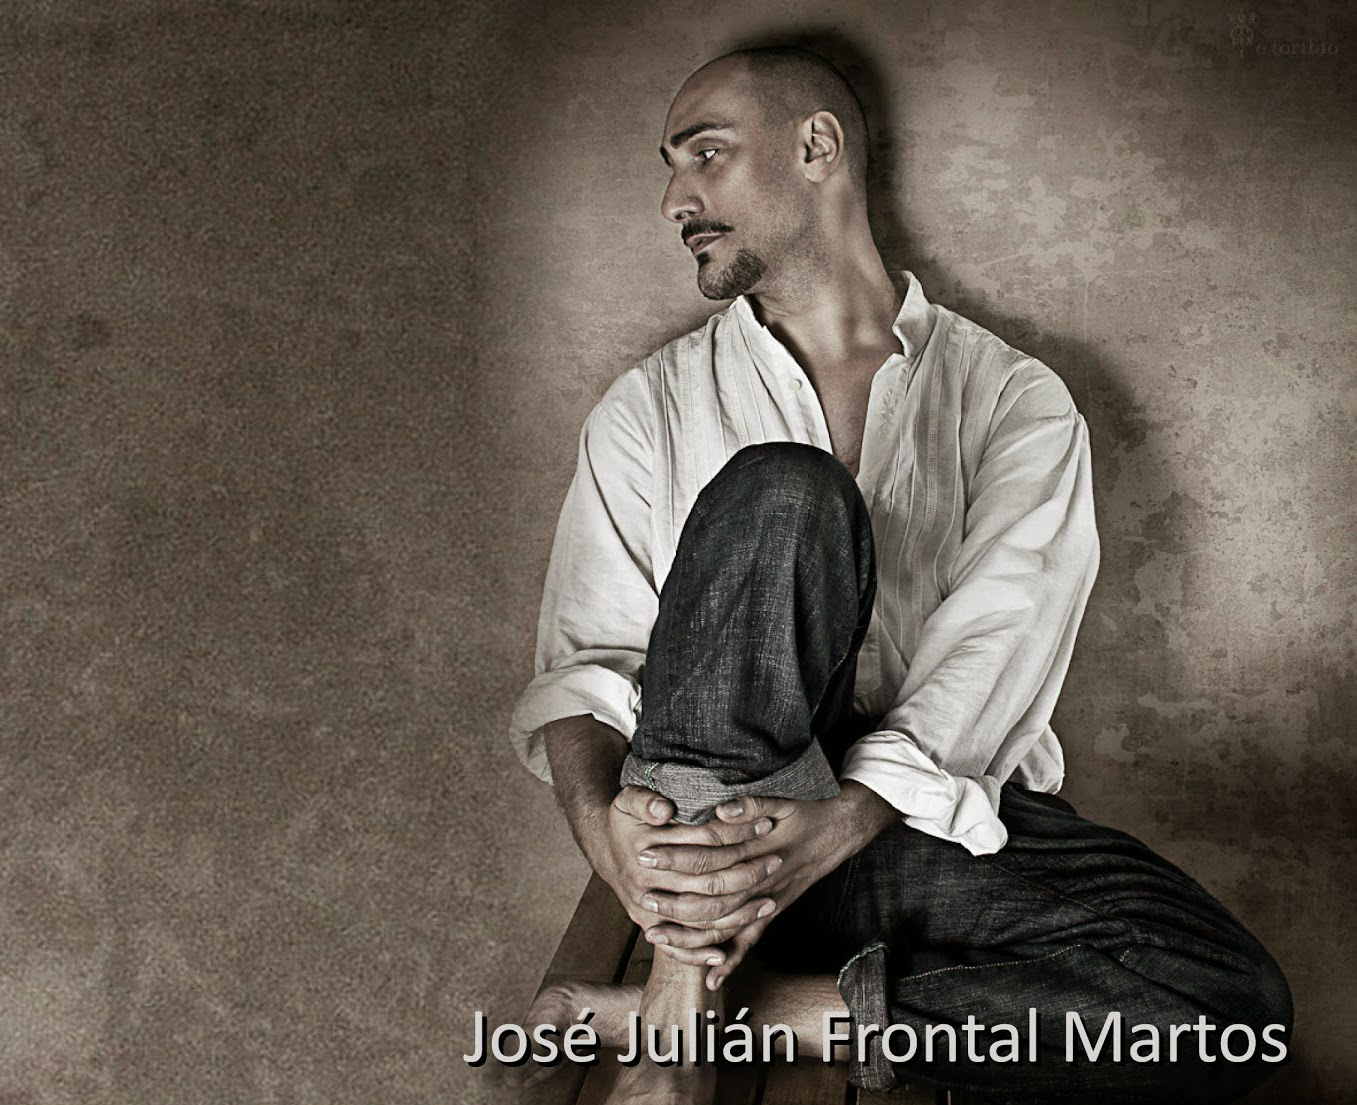 José Julián Frontal